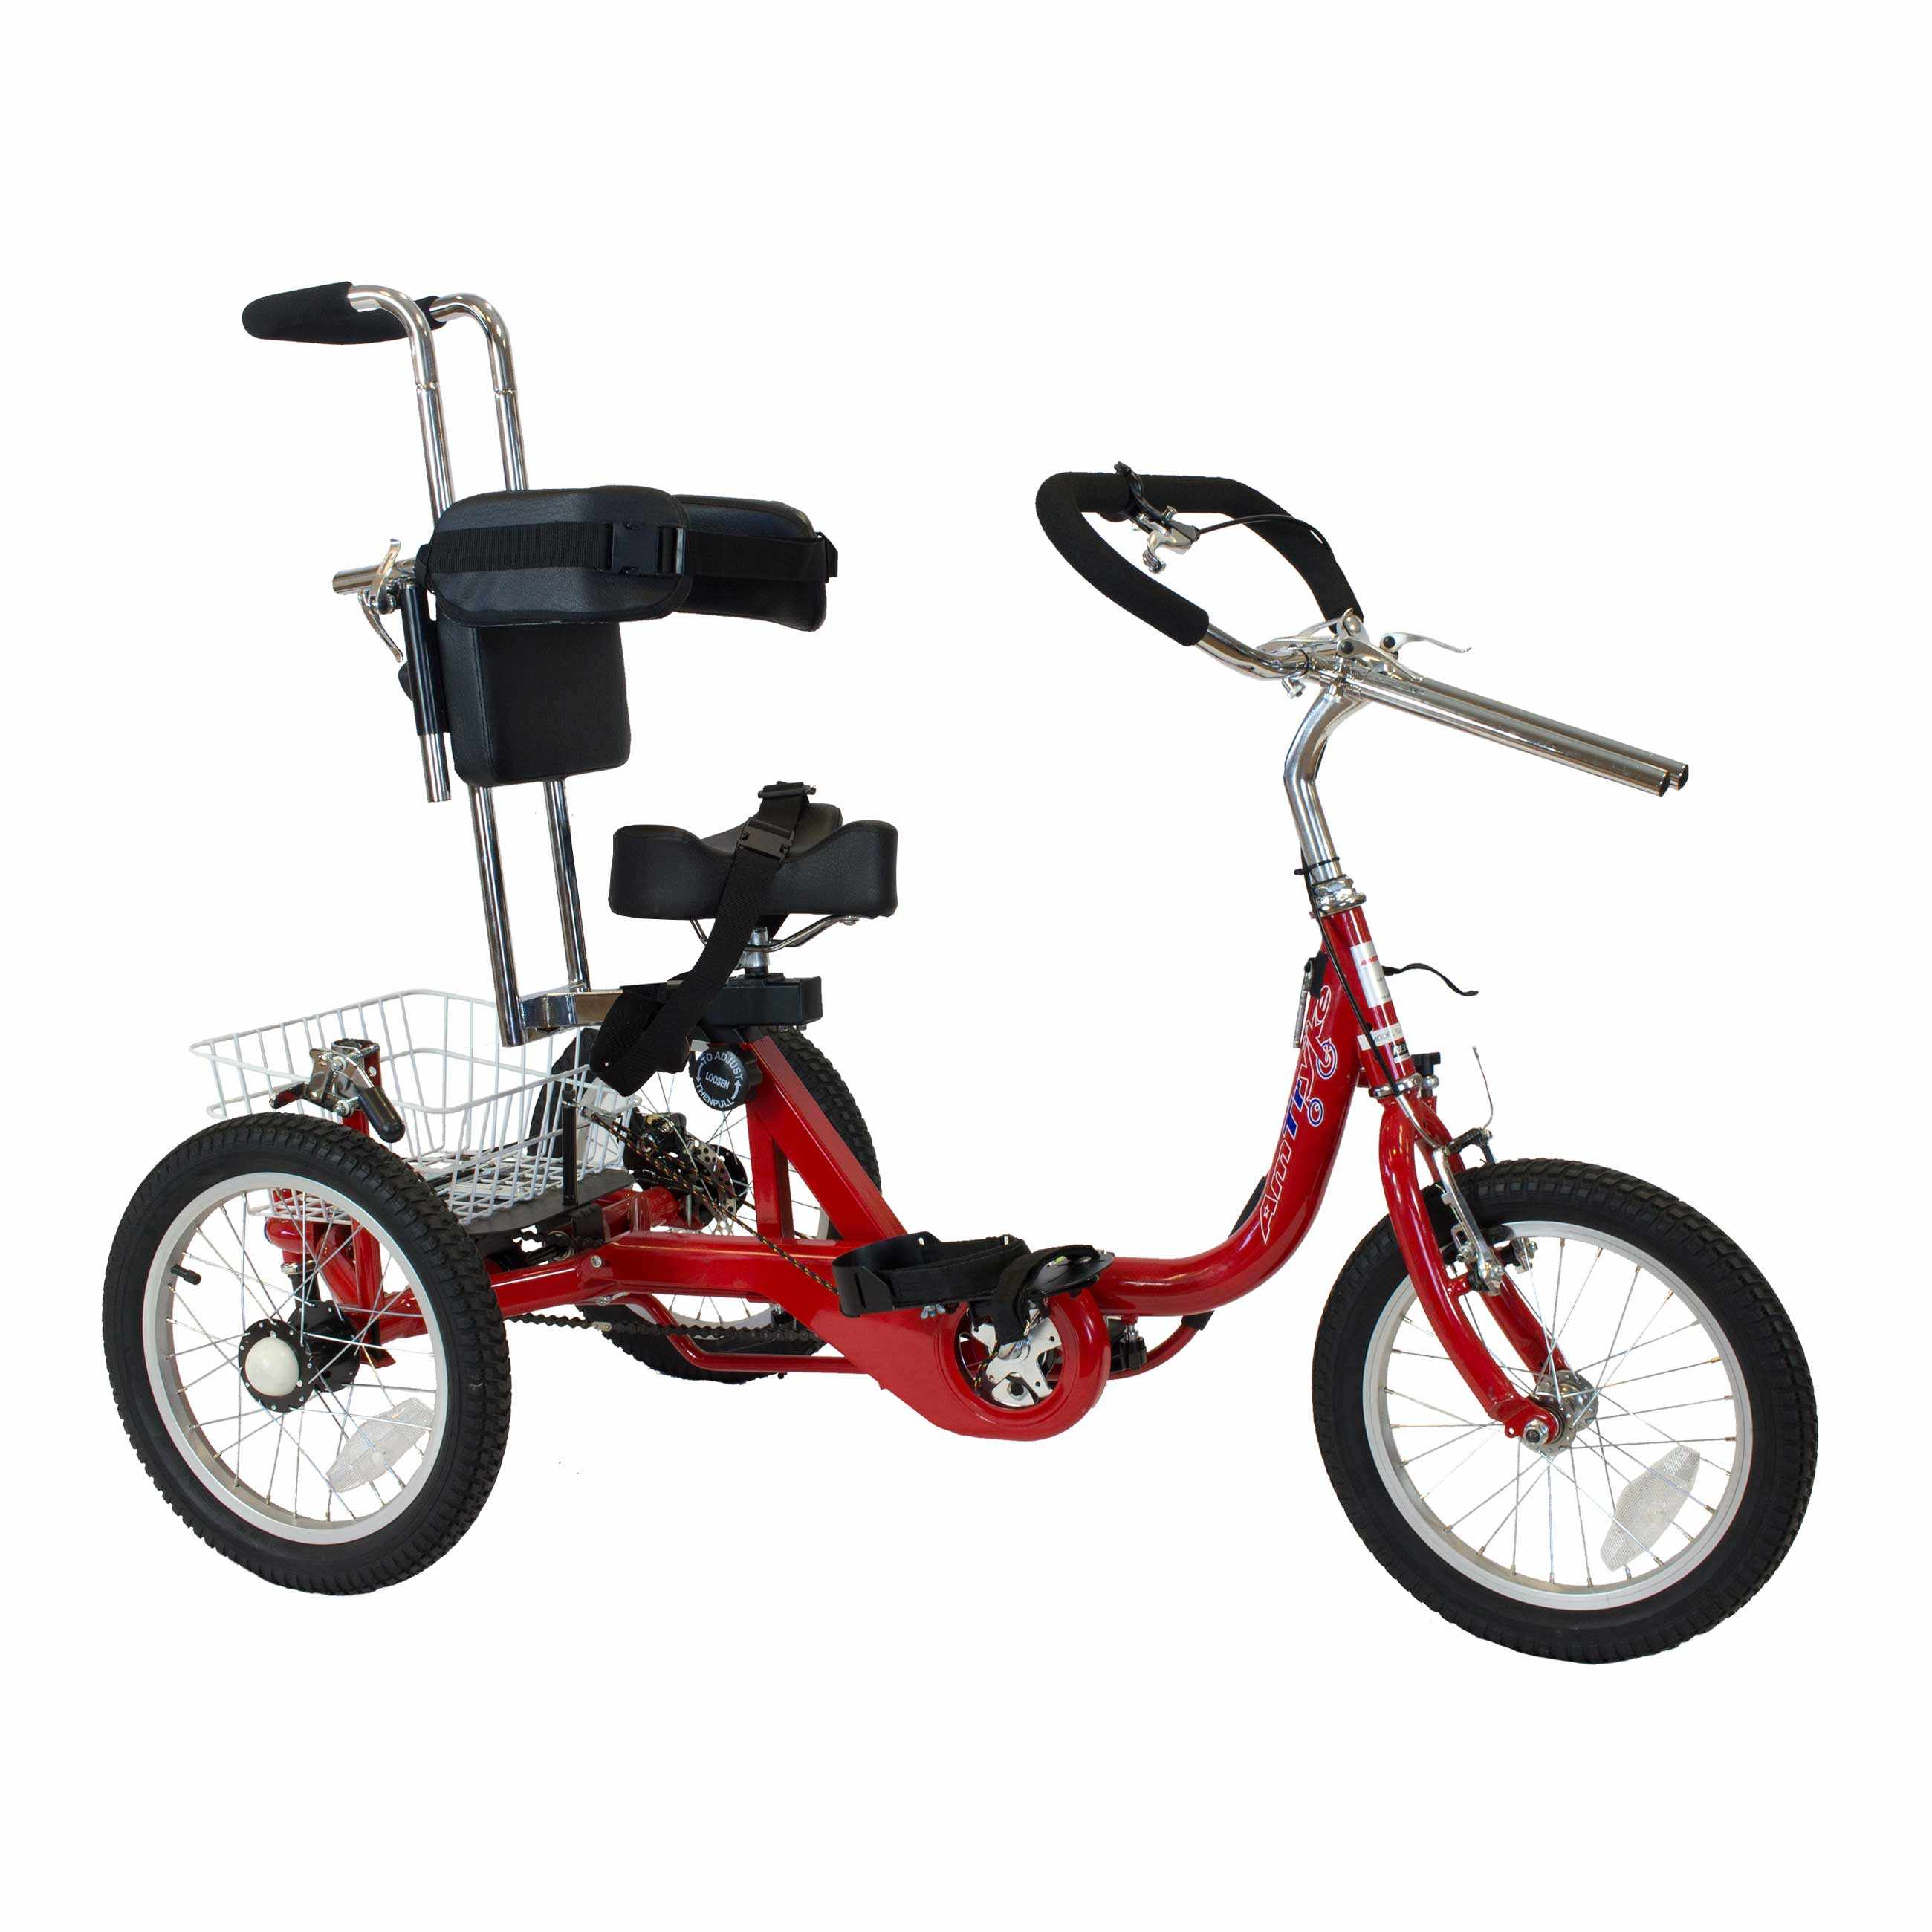 Amtryke Proseries 1416 Tricycle | Amtryke Tricycles (50-Fc-1416)